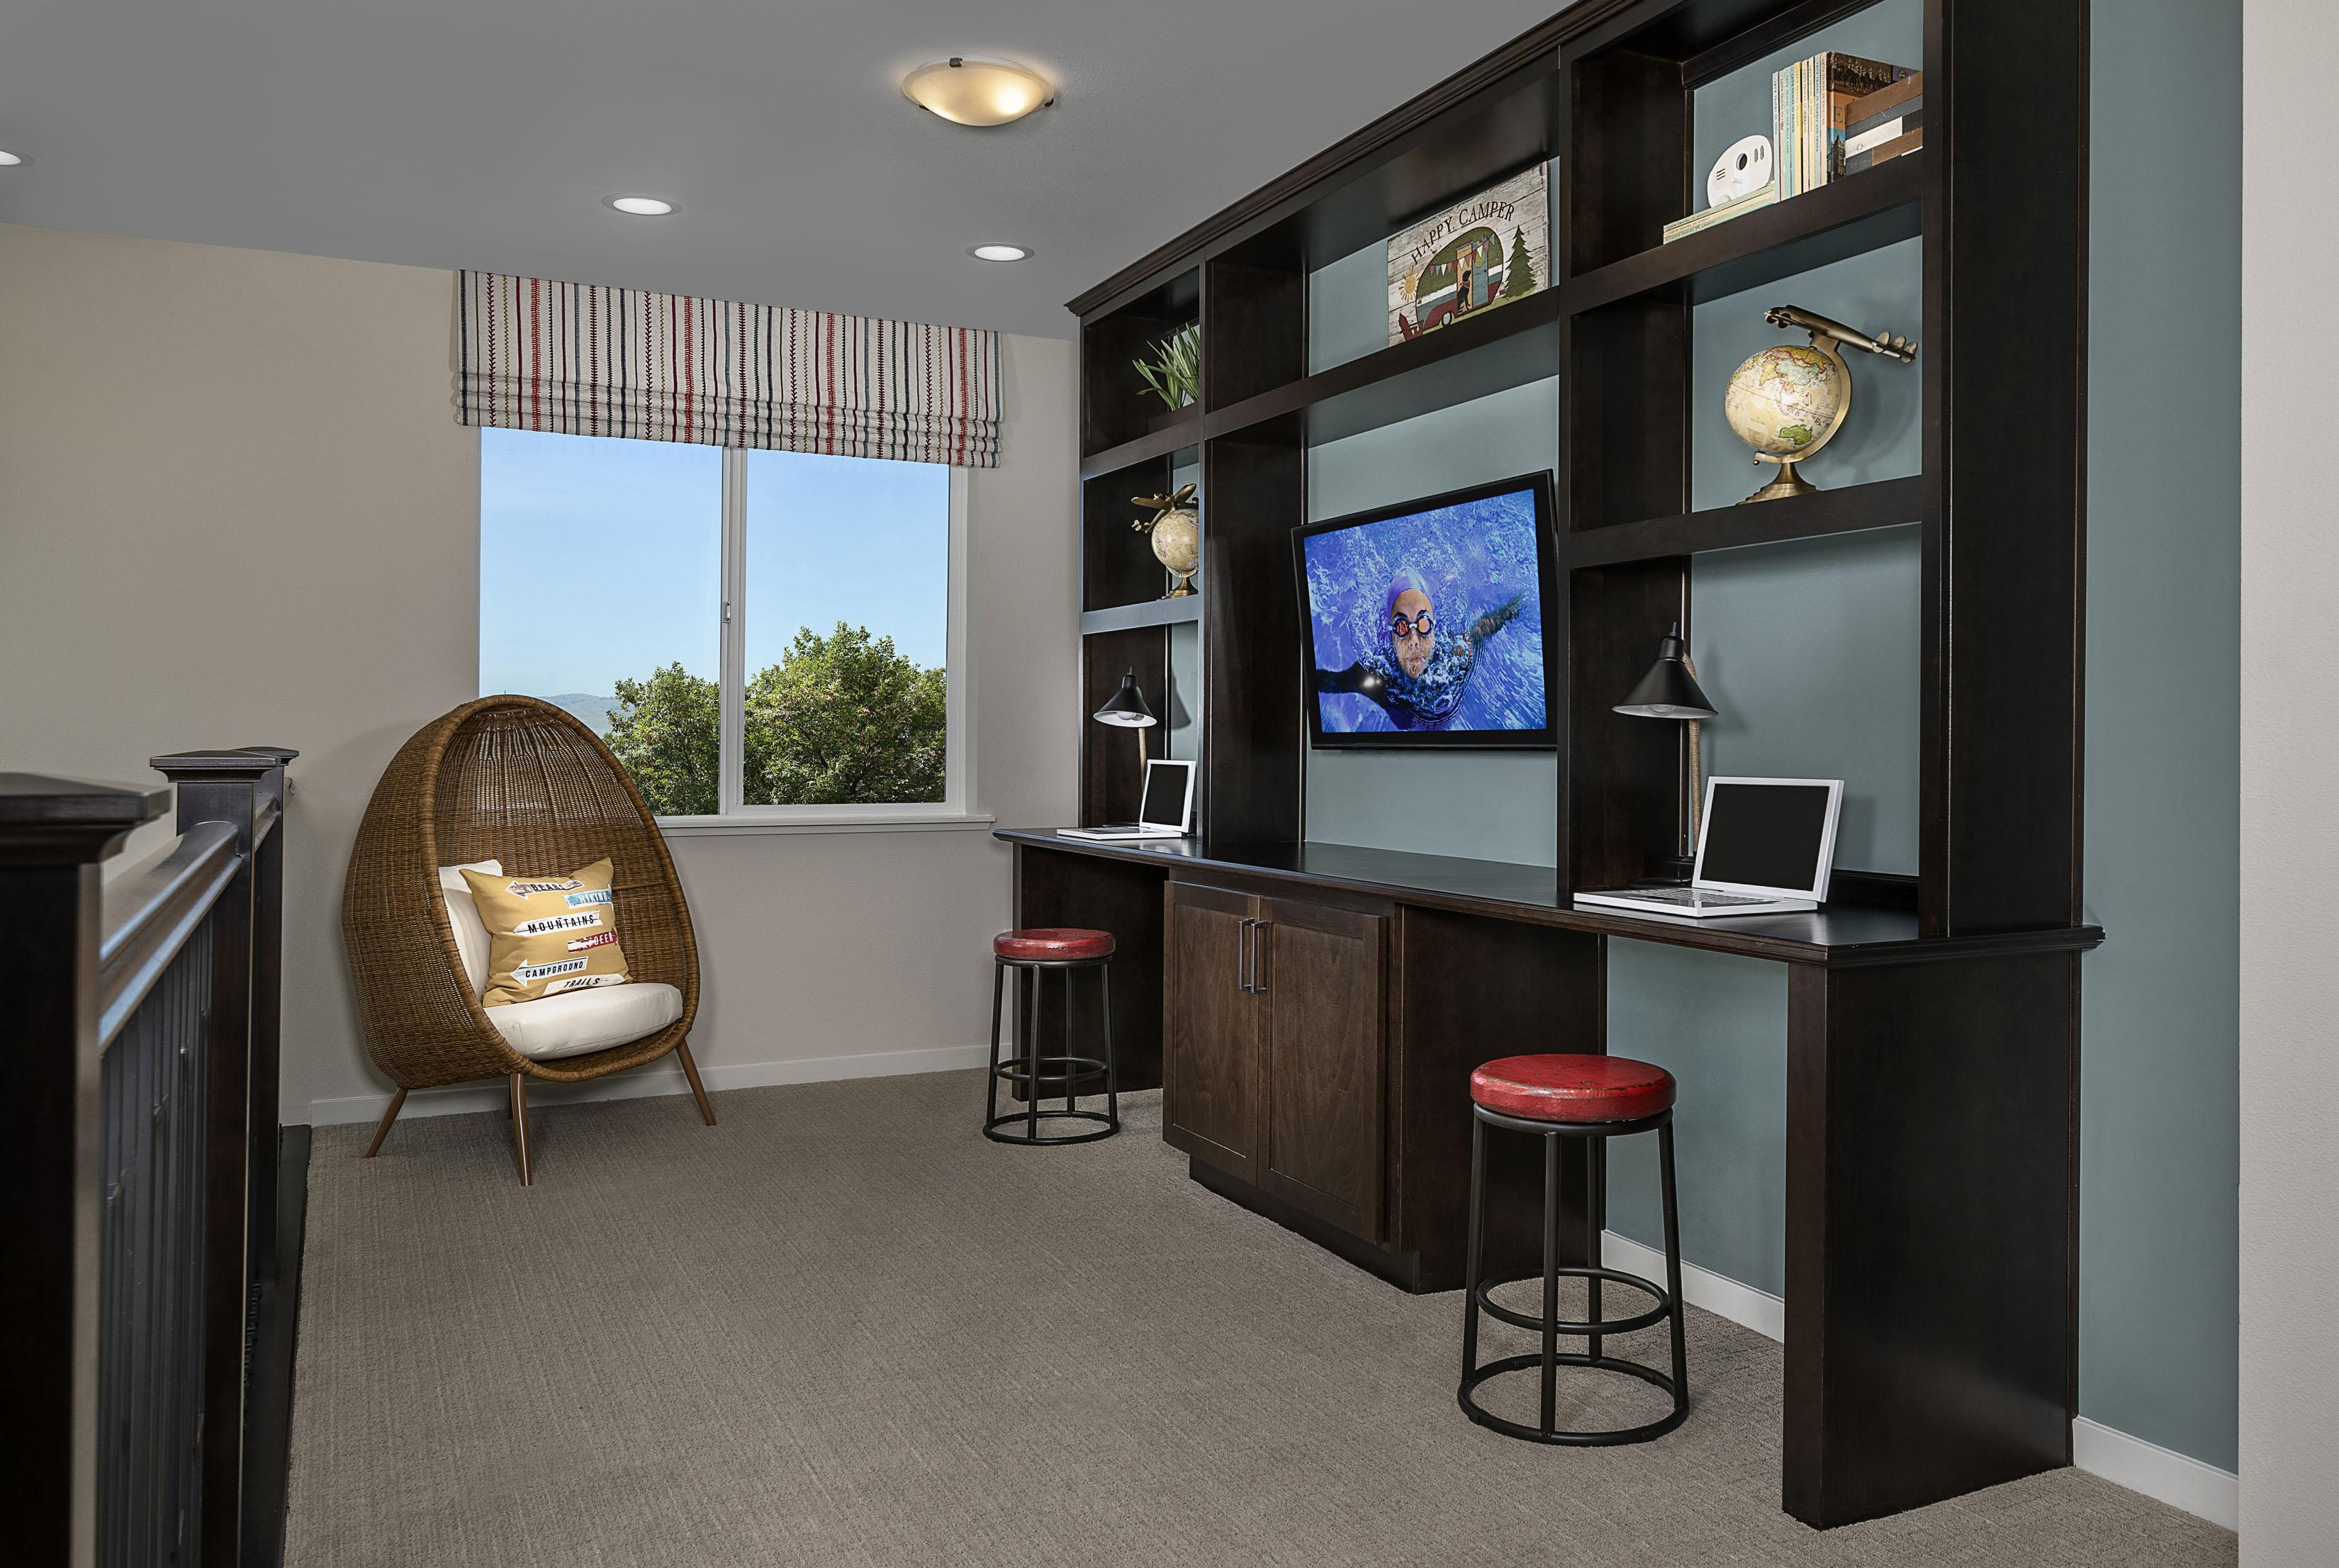 Living Area featured in the Carousel Residence 2 By Kiper Homes in Santa Cruz, CA